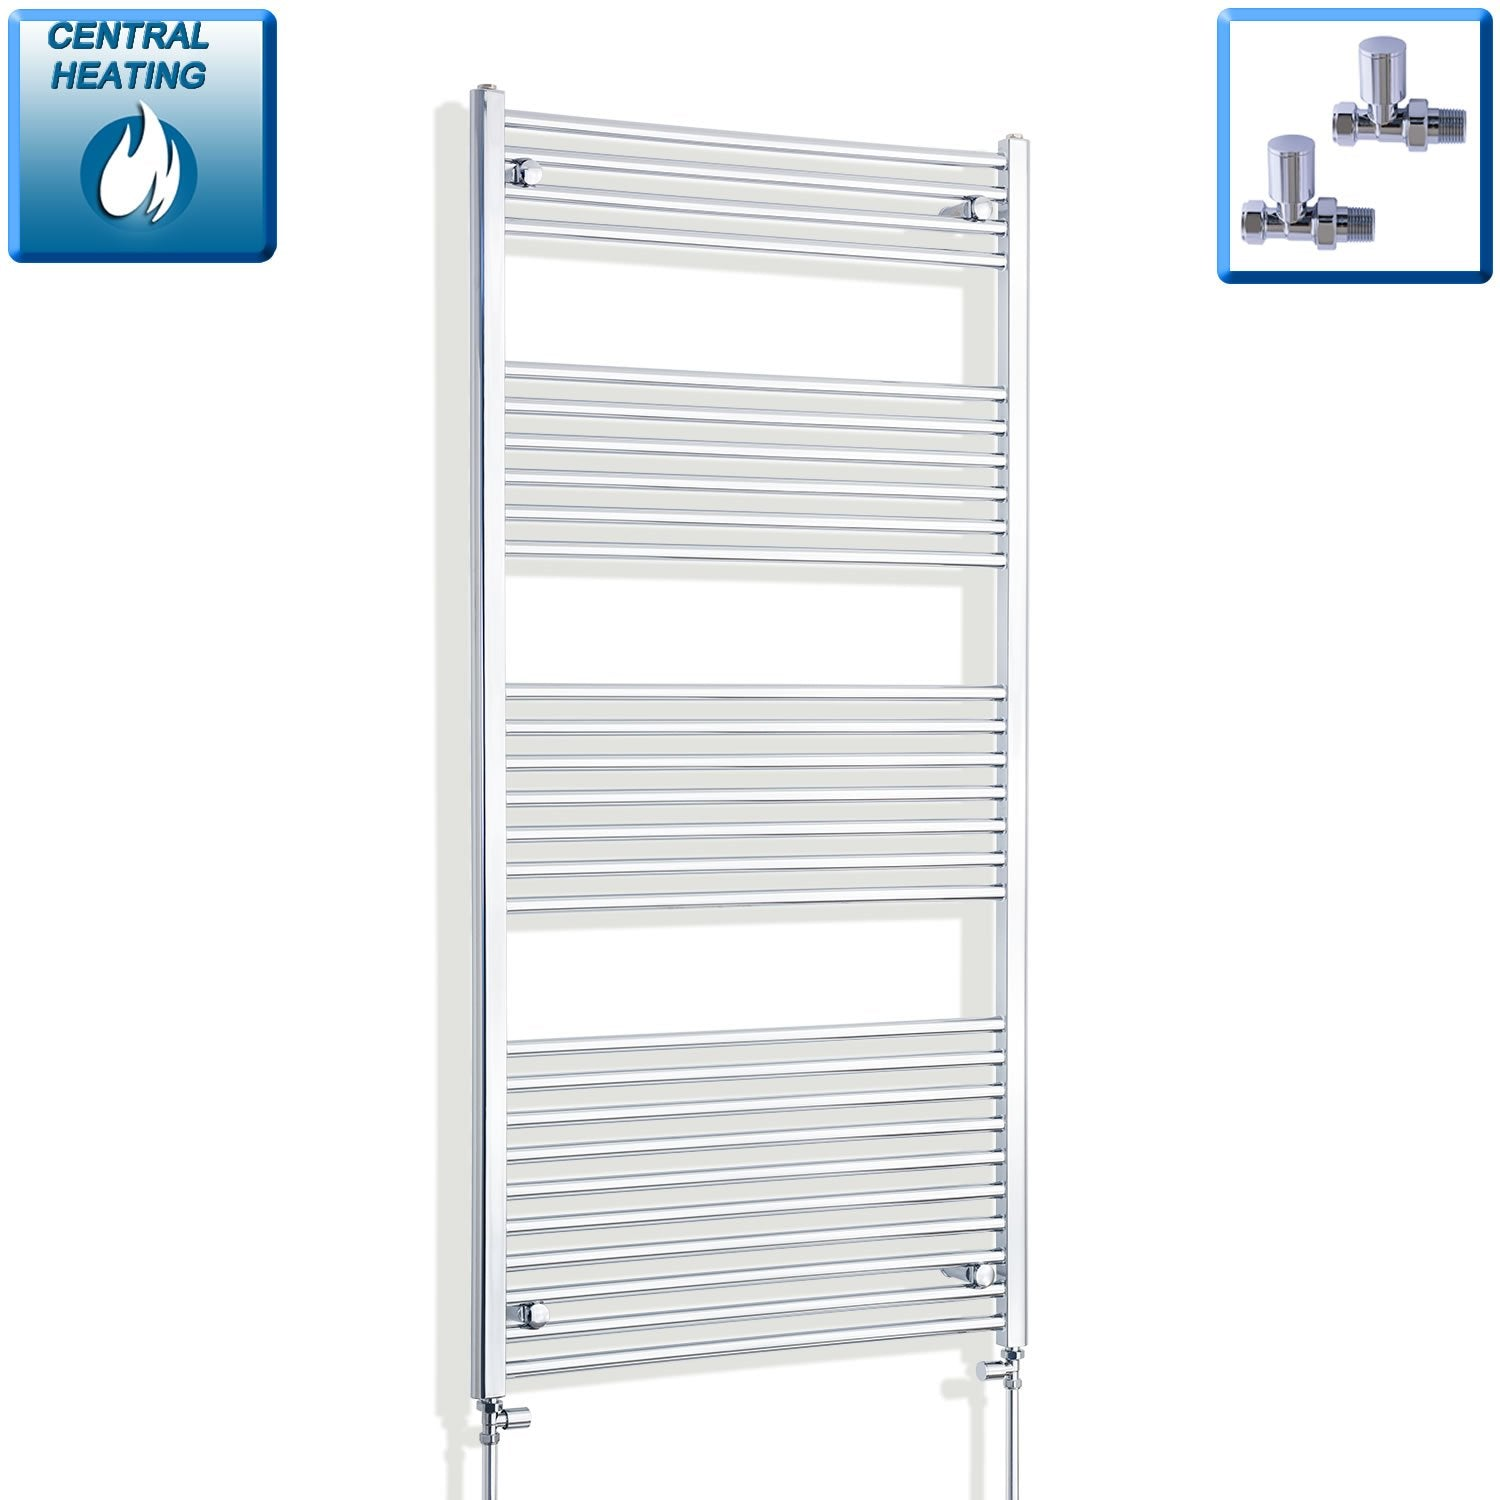 750mm Wide 1600mm High Flat Chrome Heated Towel Rail Radiator HTR,With Straight Valve